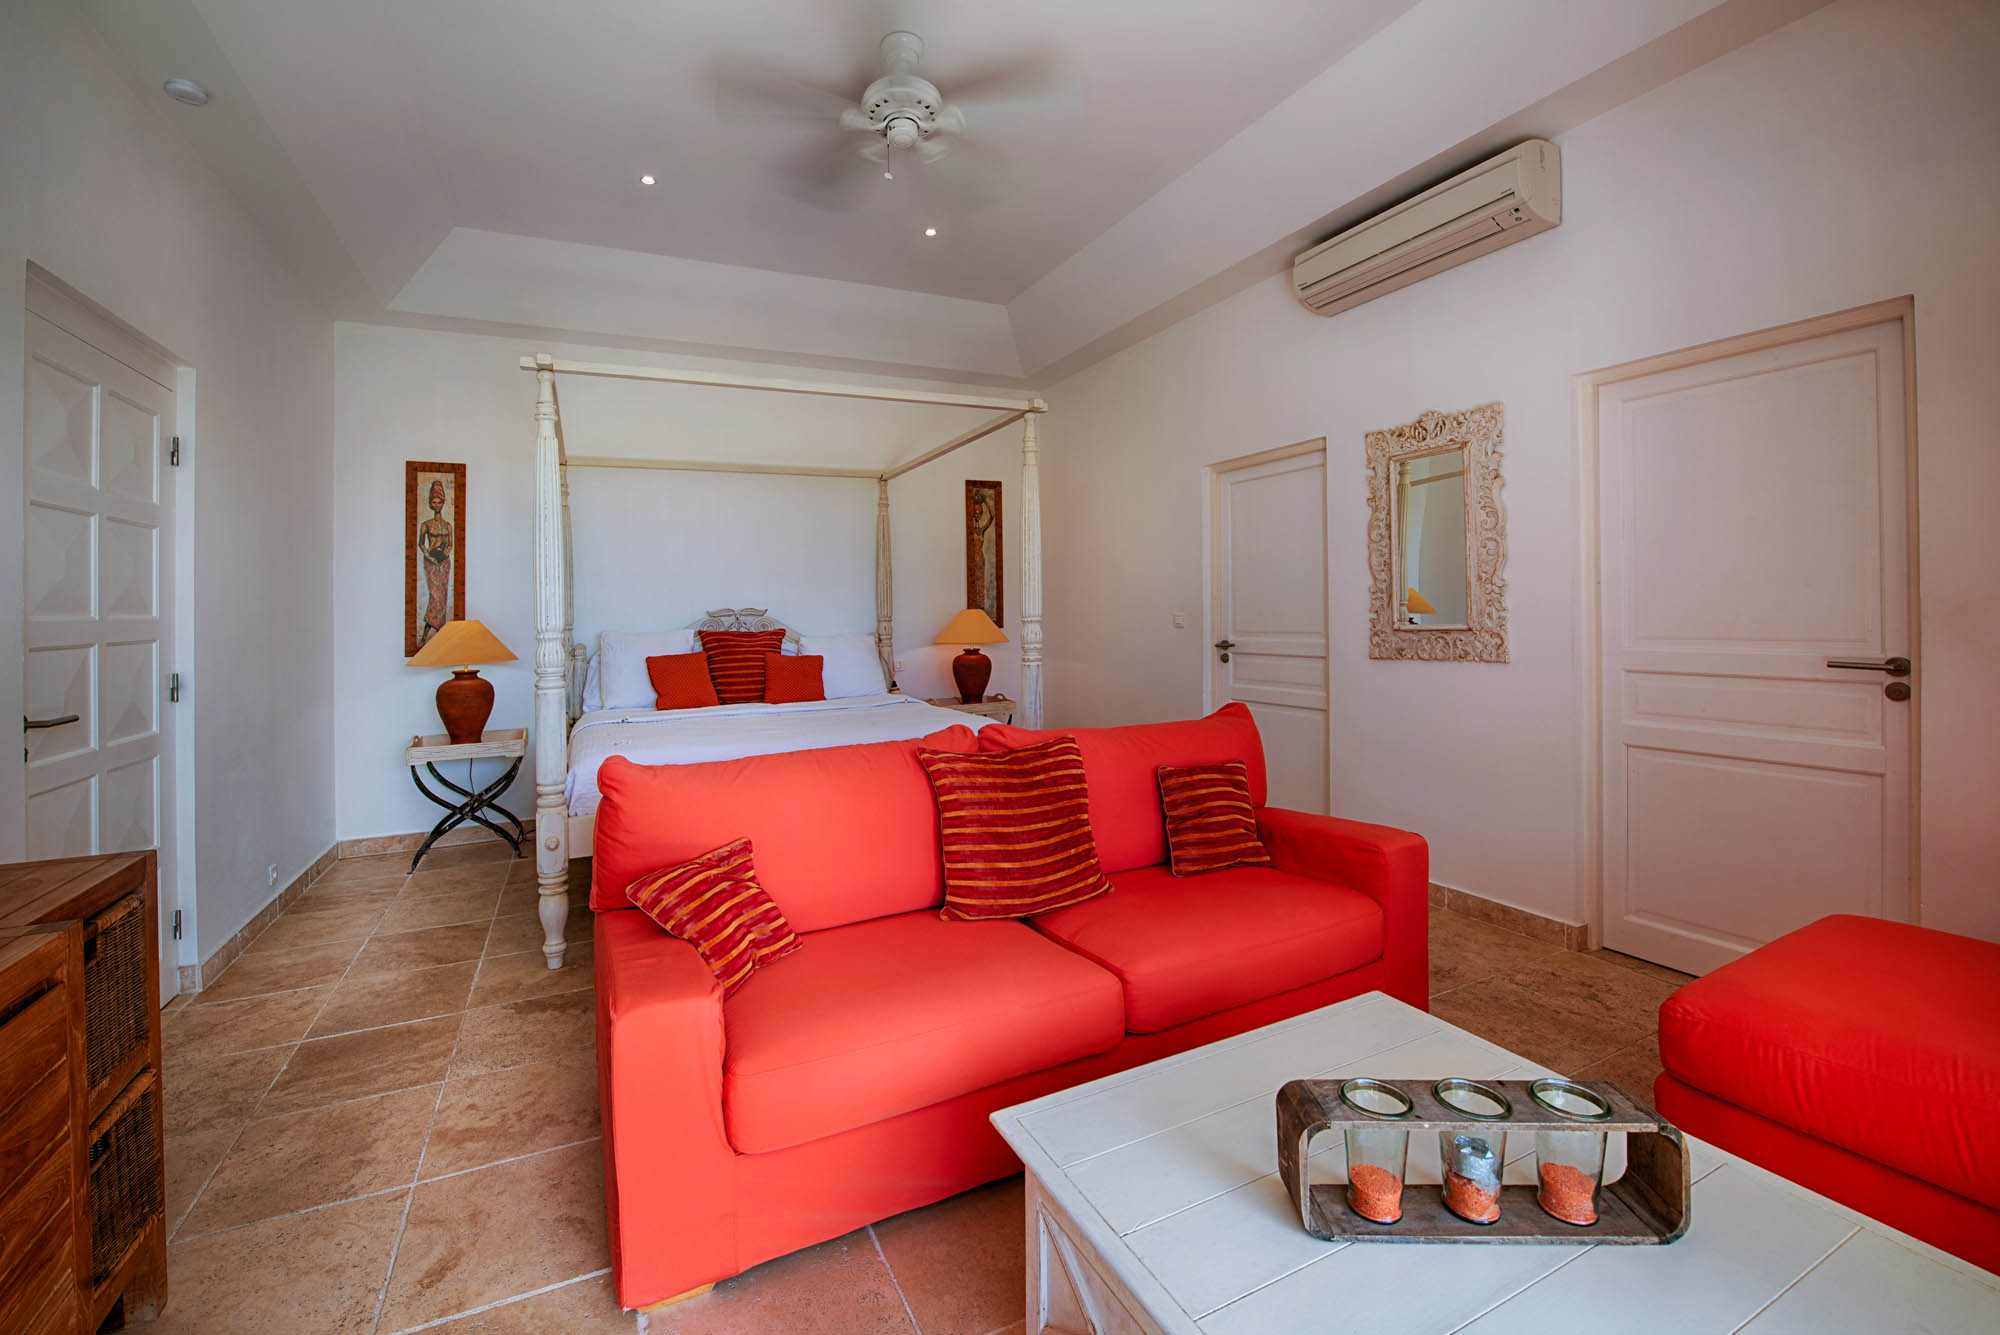 Each bedroom of Lune de Miel villa rental has a king size bed, air conditioning, TV and ceiling fan.